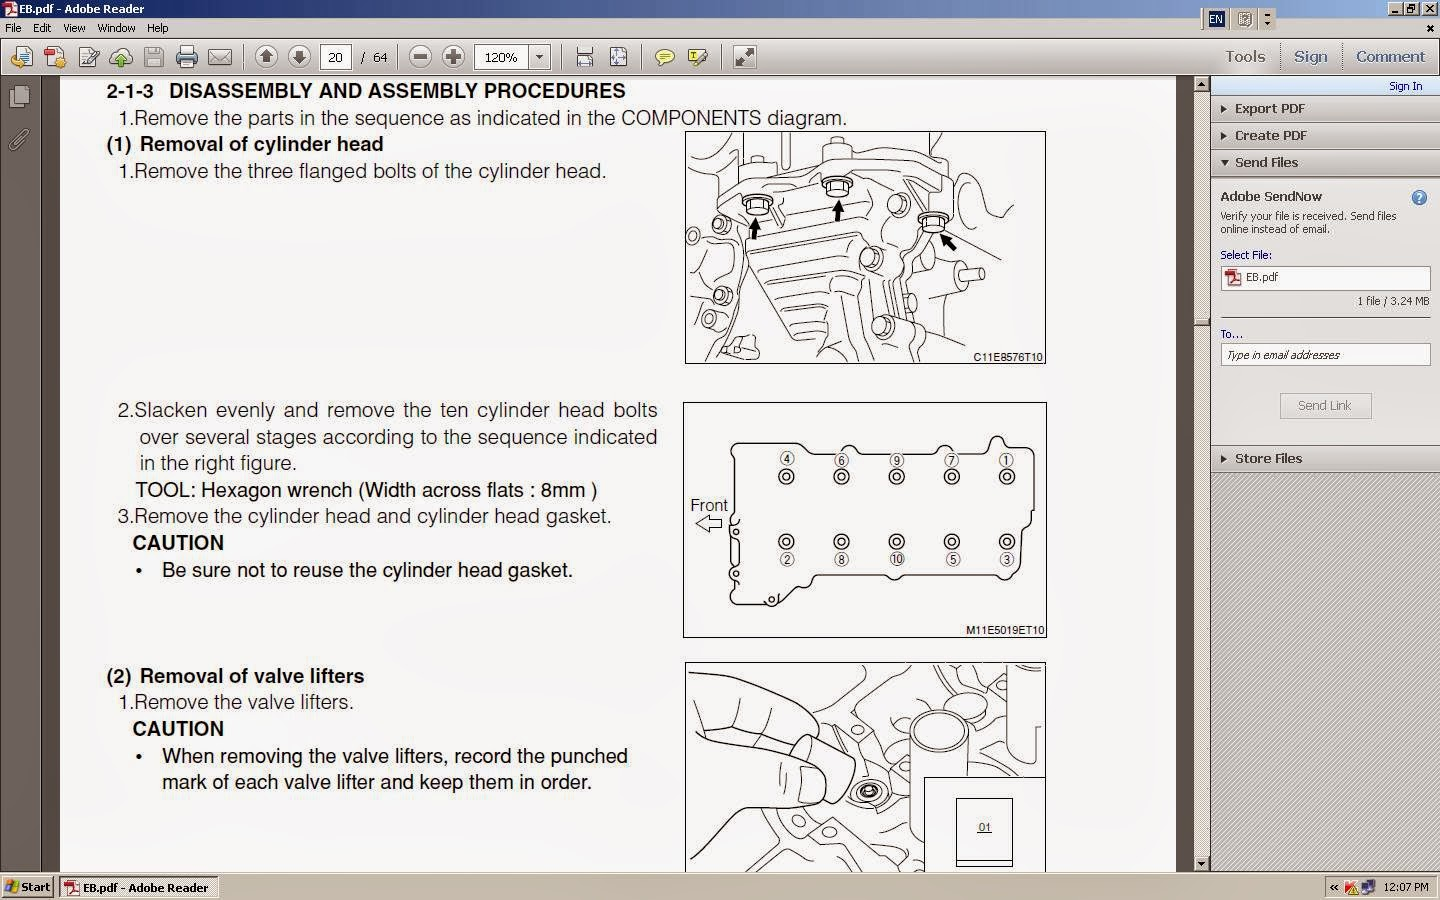 kp gasket daihatsu jb jl and jb det engine cylinder head gasket removal factory five wiring diagram this is just part of the few pages which can find it in the service manual, please click on the image to view the original size of the photo